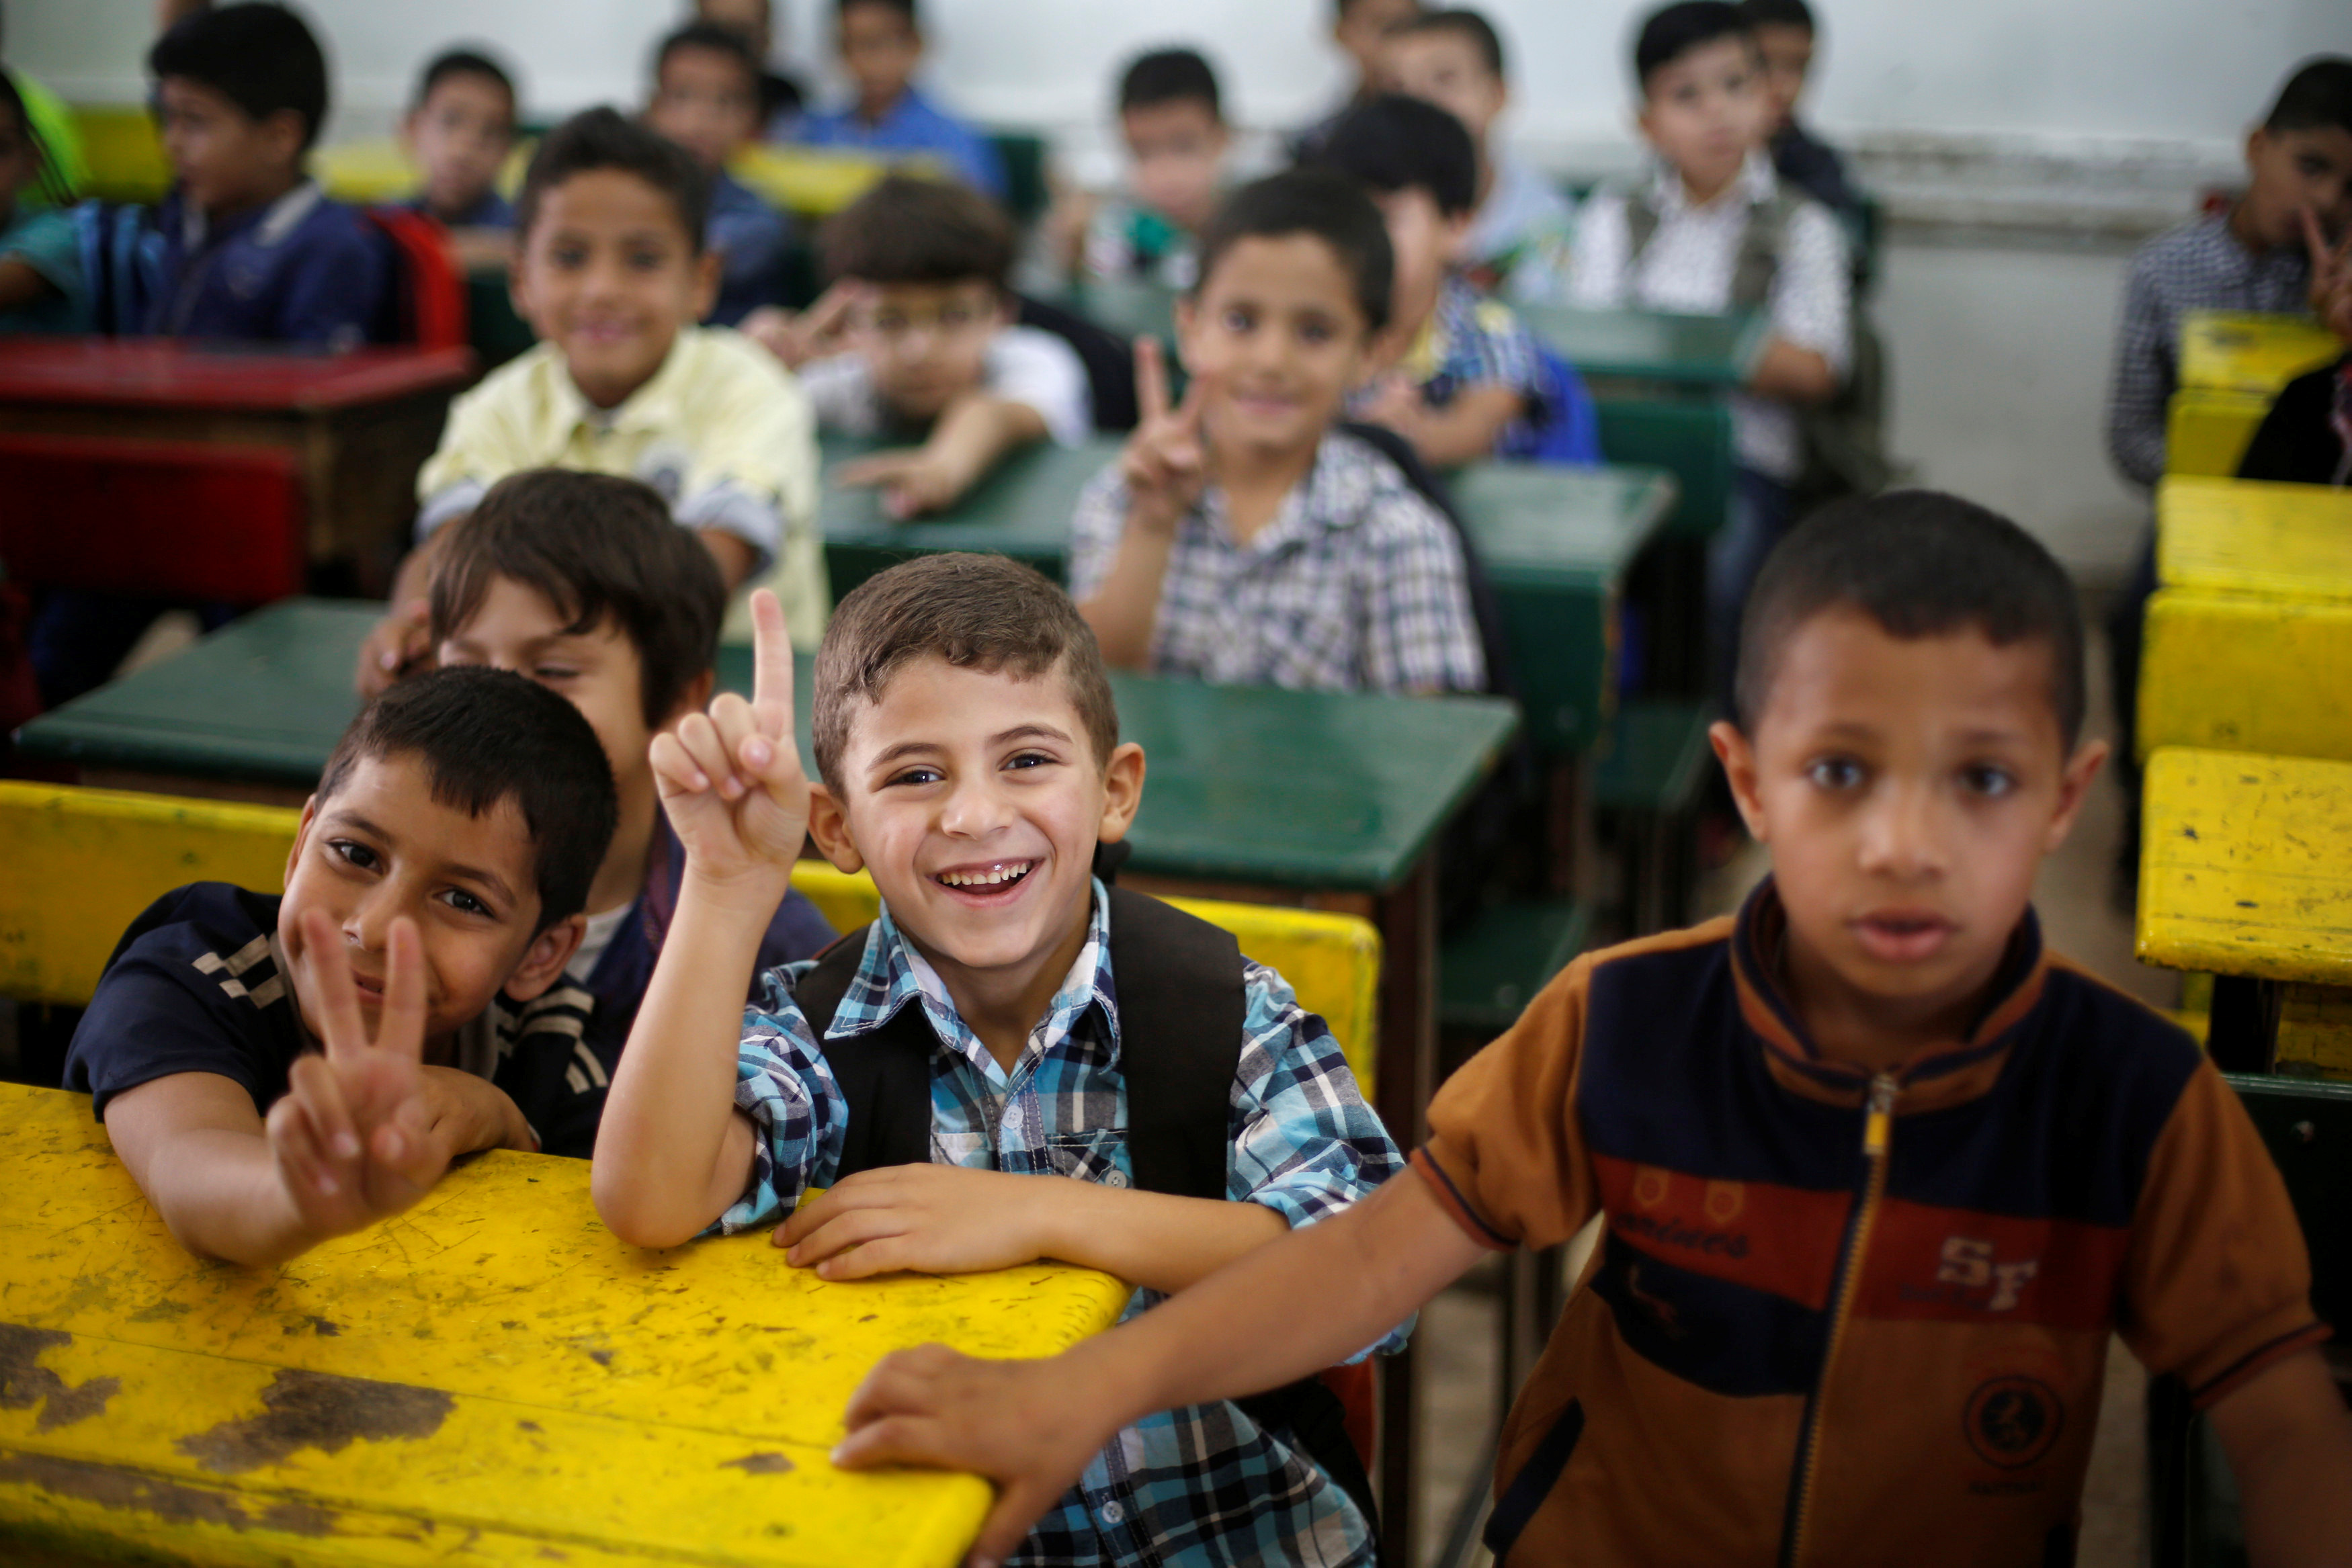 Schoolchildren react to the camera as they attend a lesson in a classroom on the first day of school